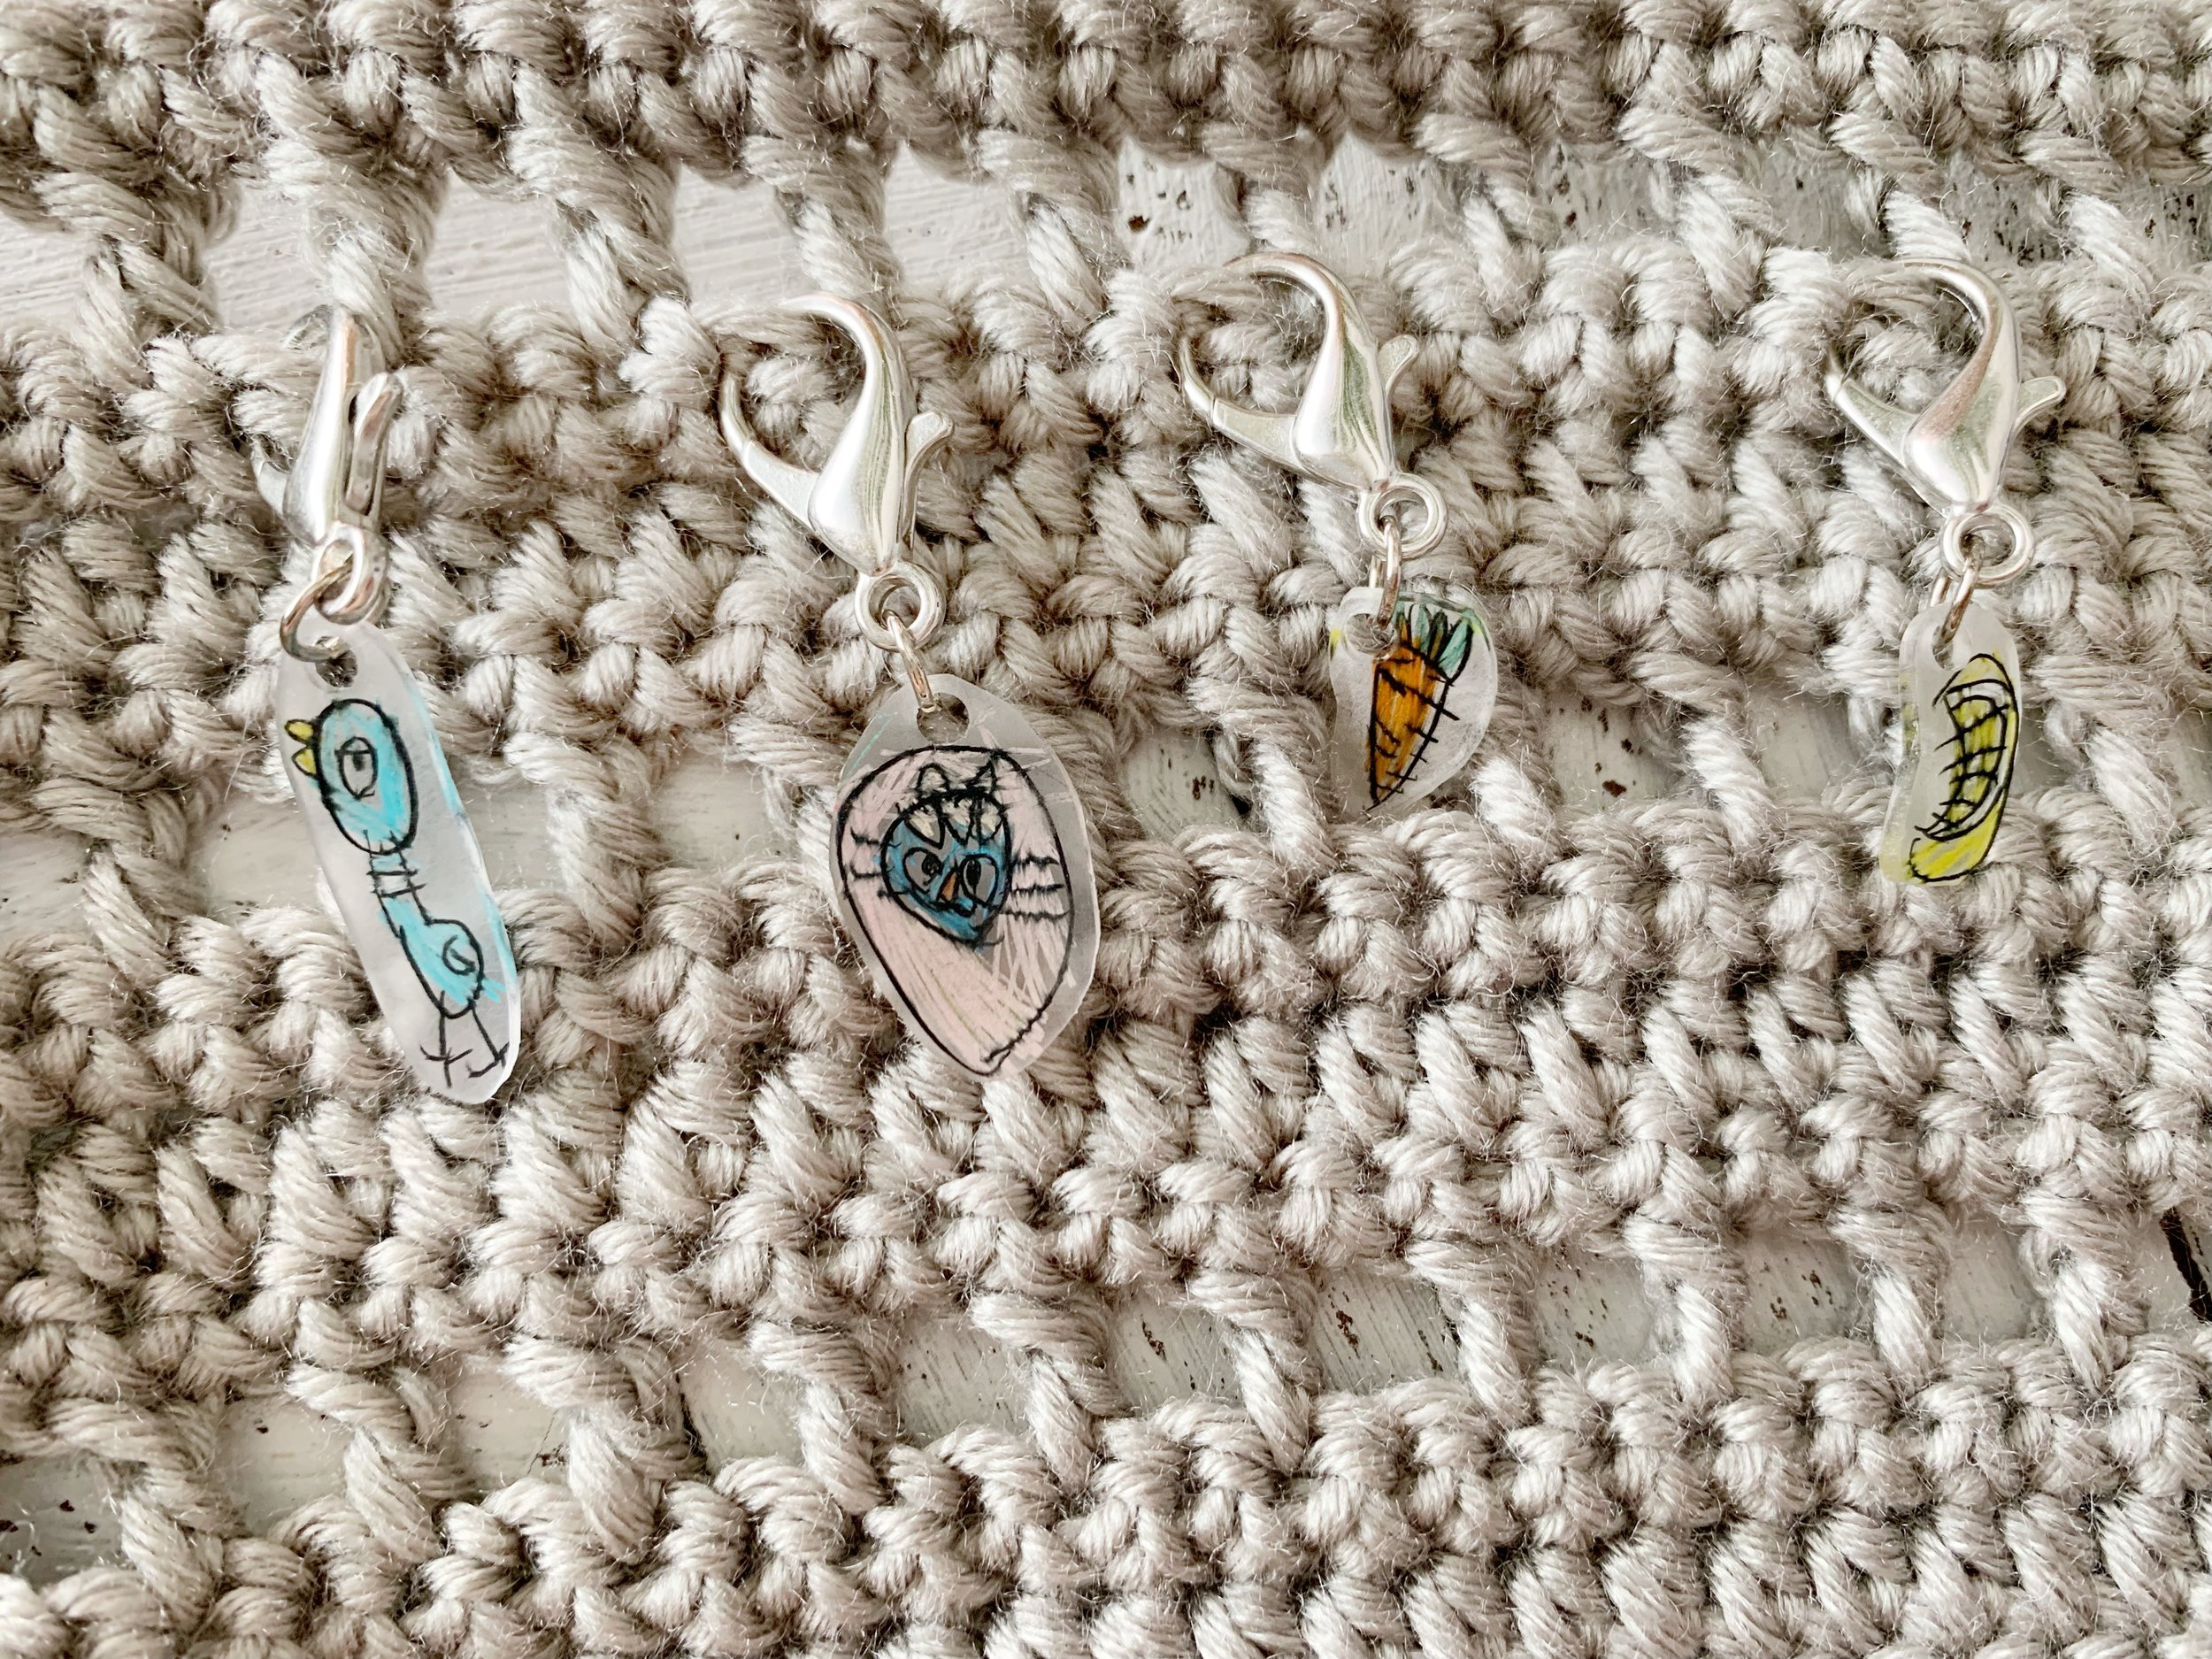 My kid's drawings turned into stitch markers.